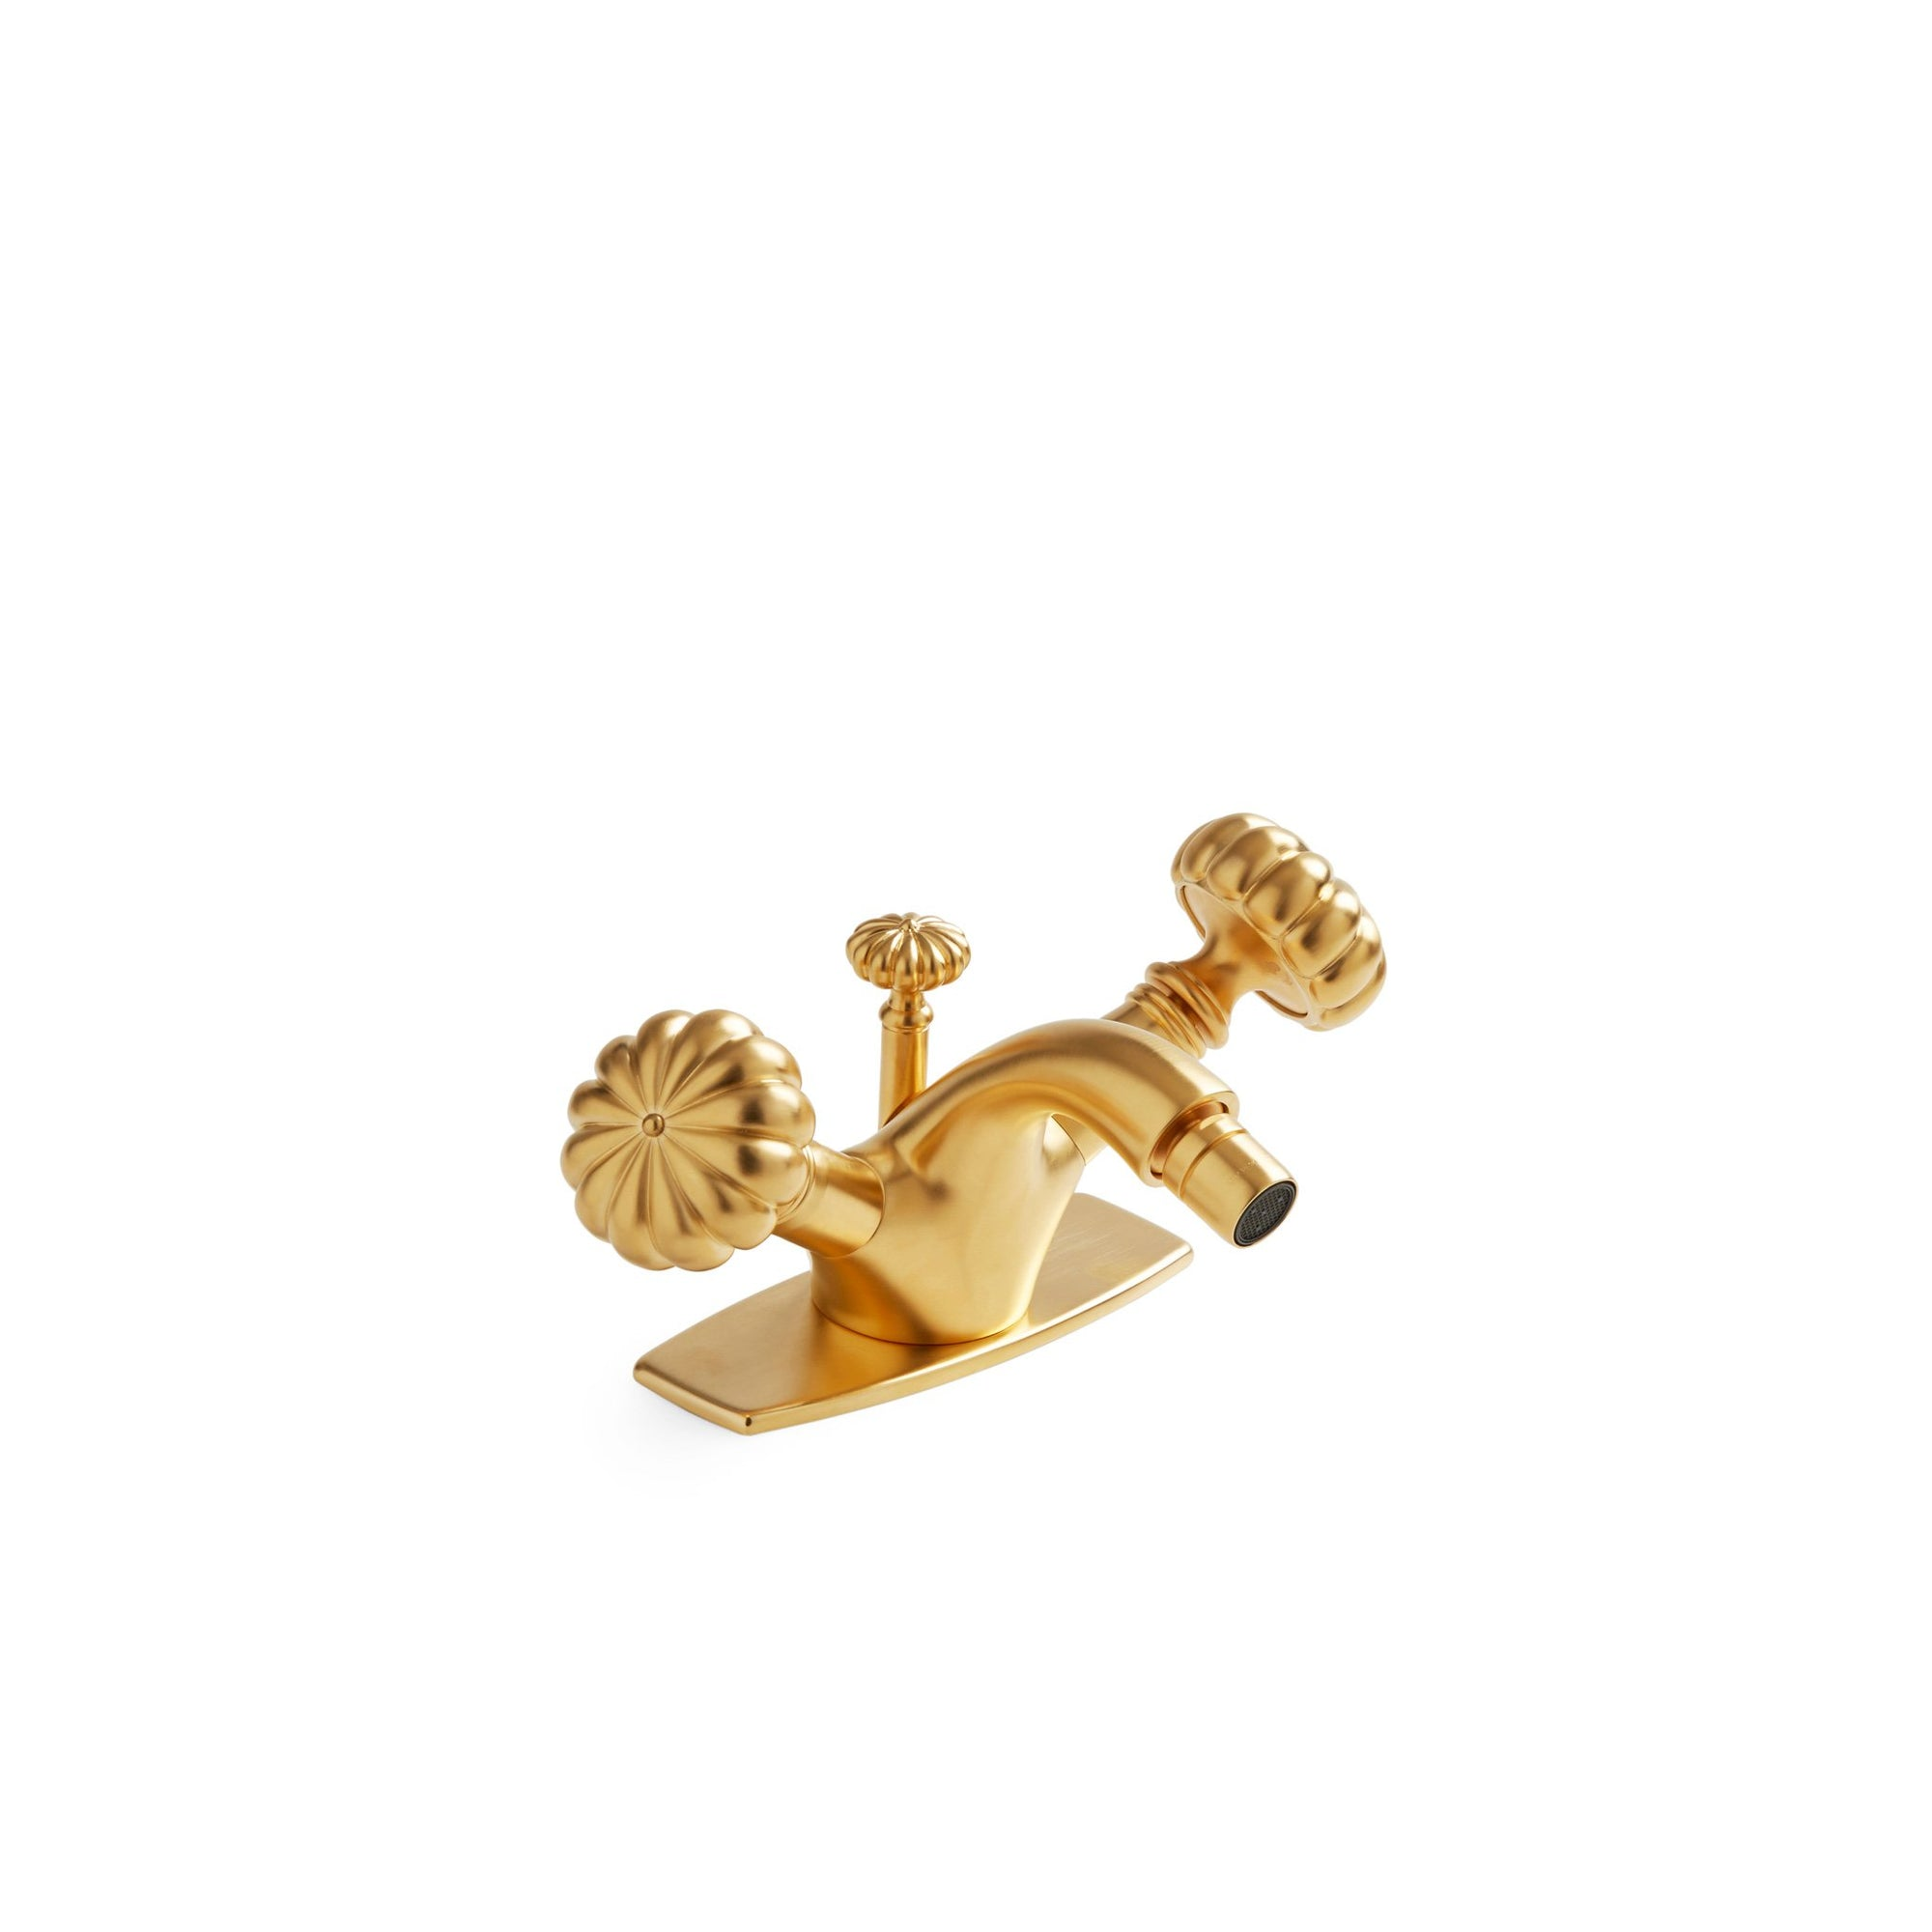 0910BDT-1H-GP Sherle Wagner International Melon Knob Bidet Set in Gold Plate metal finish